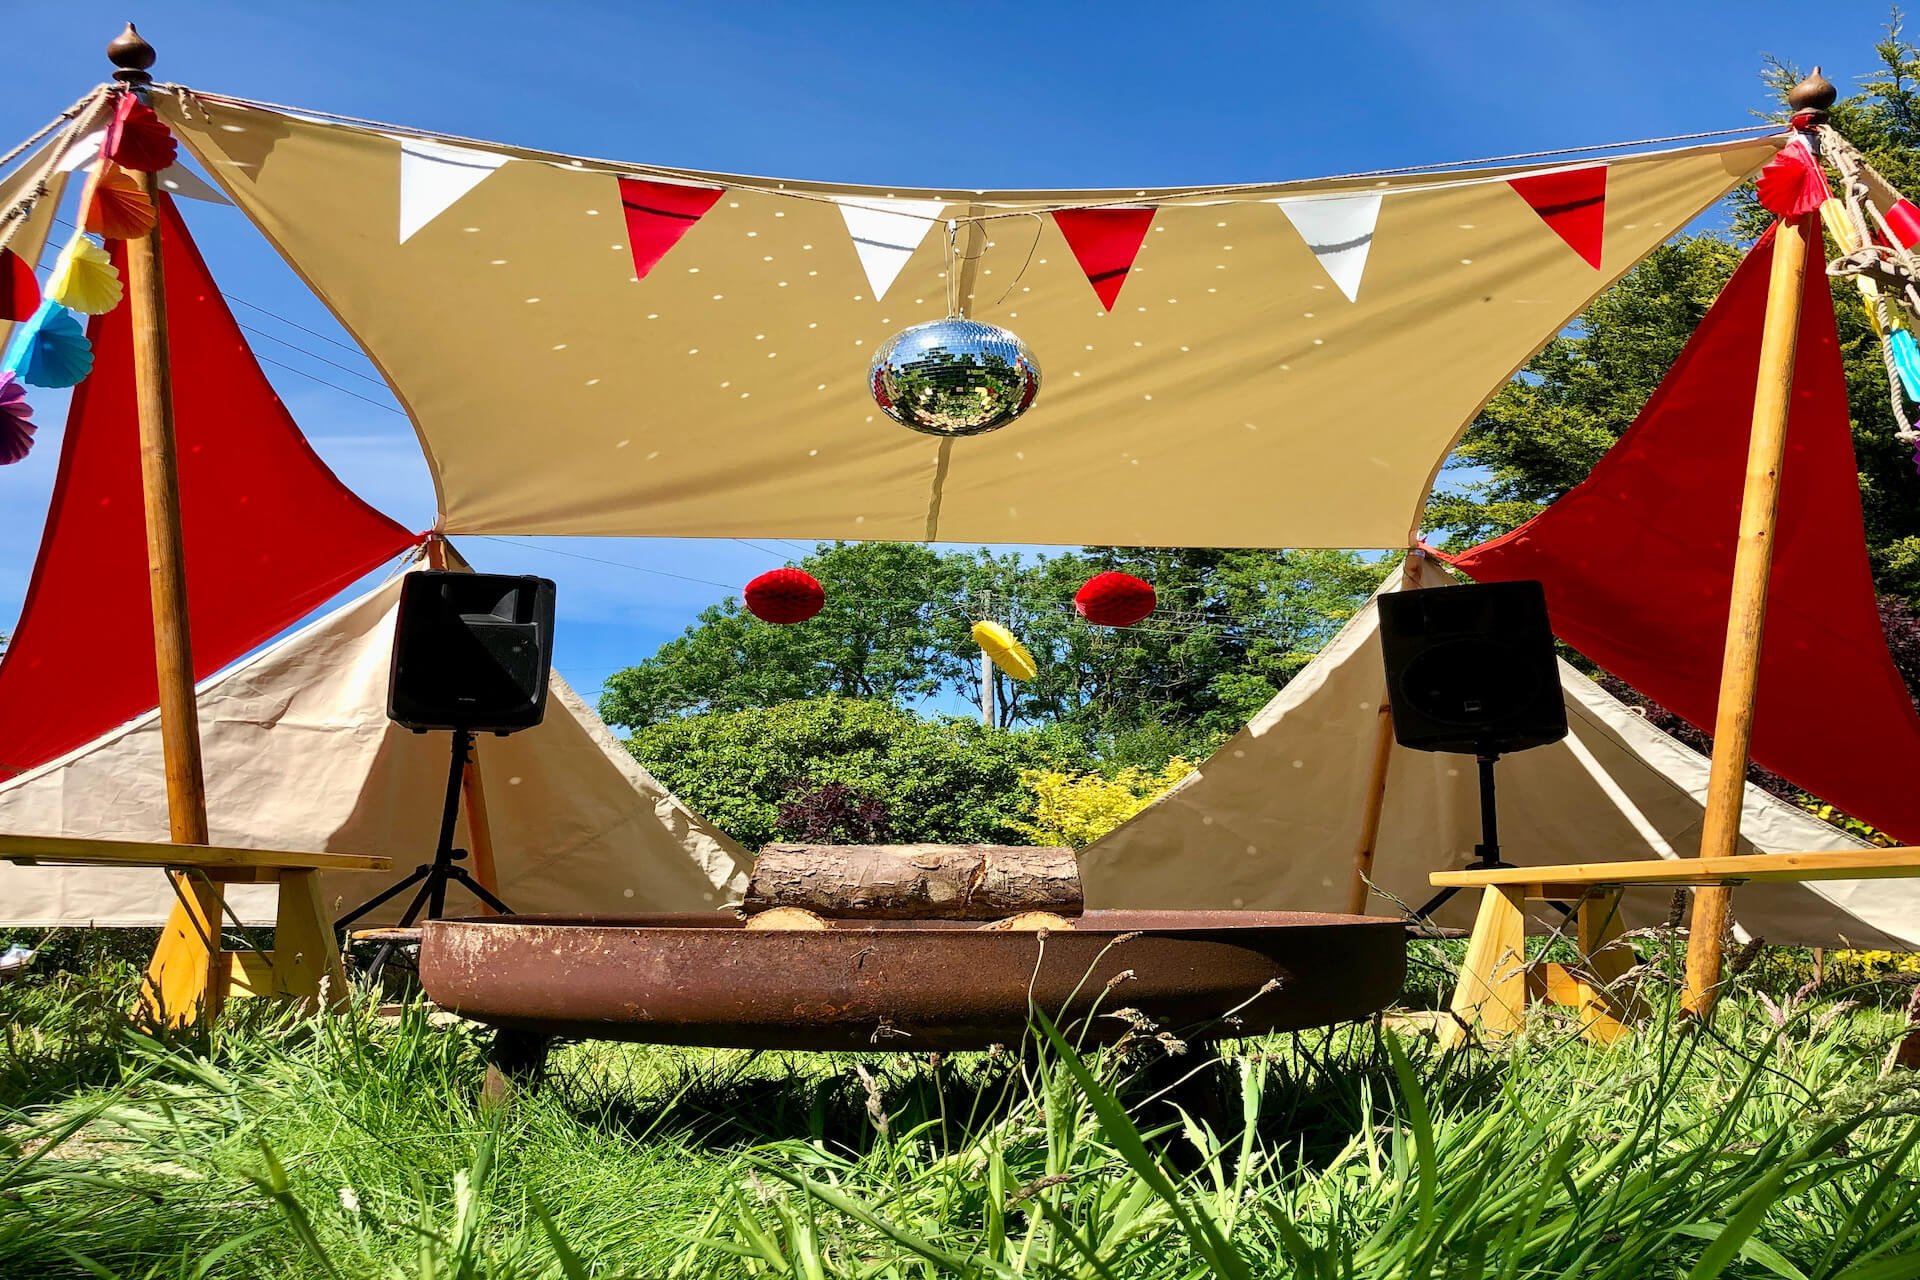 Shade seeker sails great for garden parties